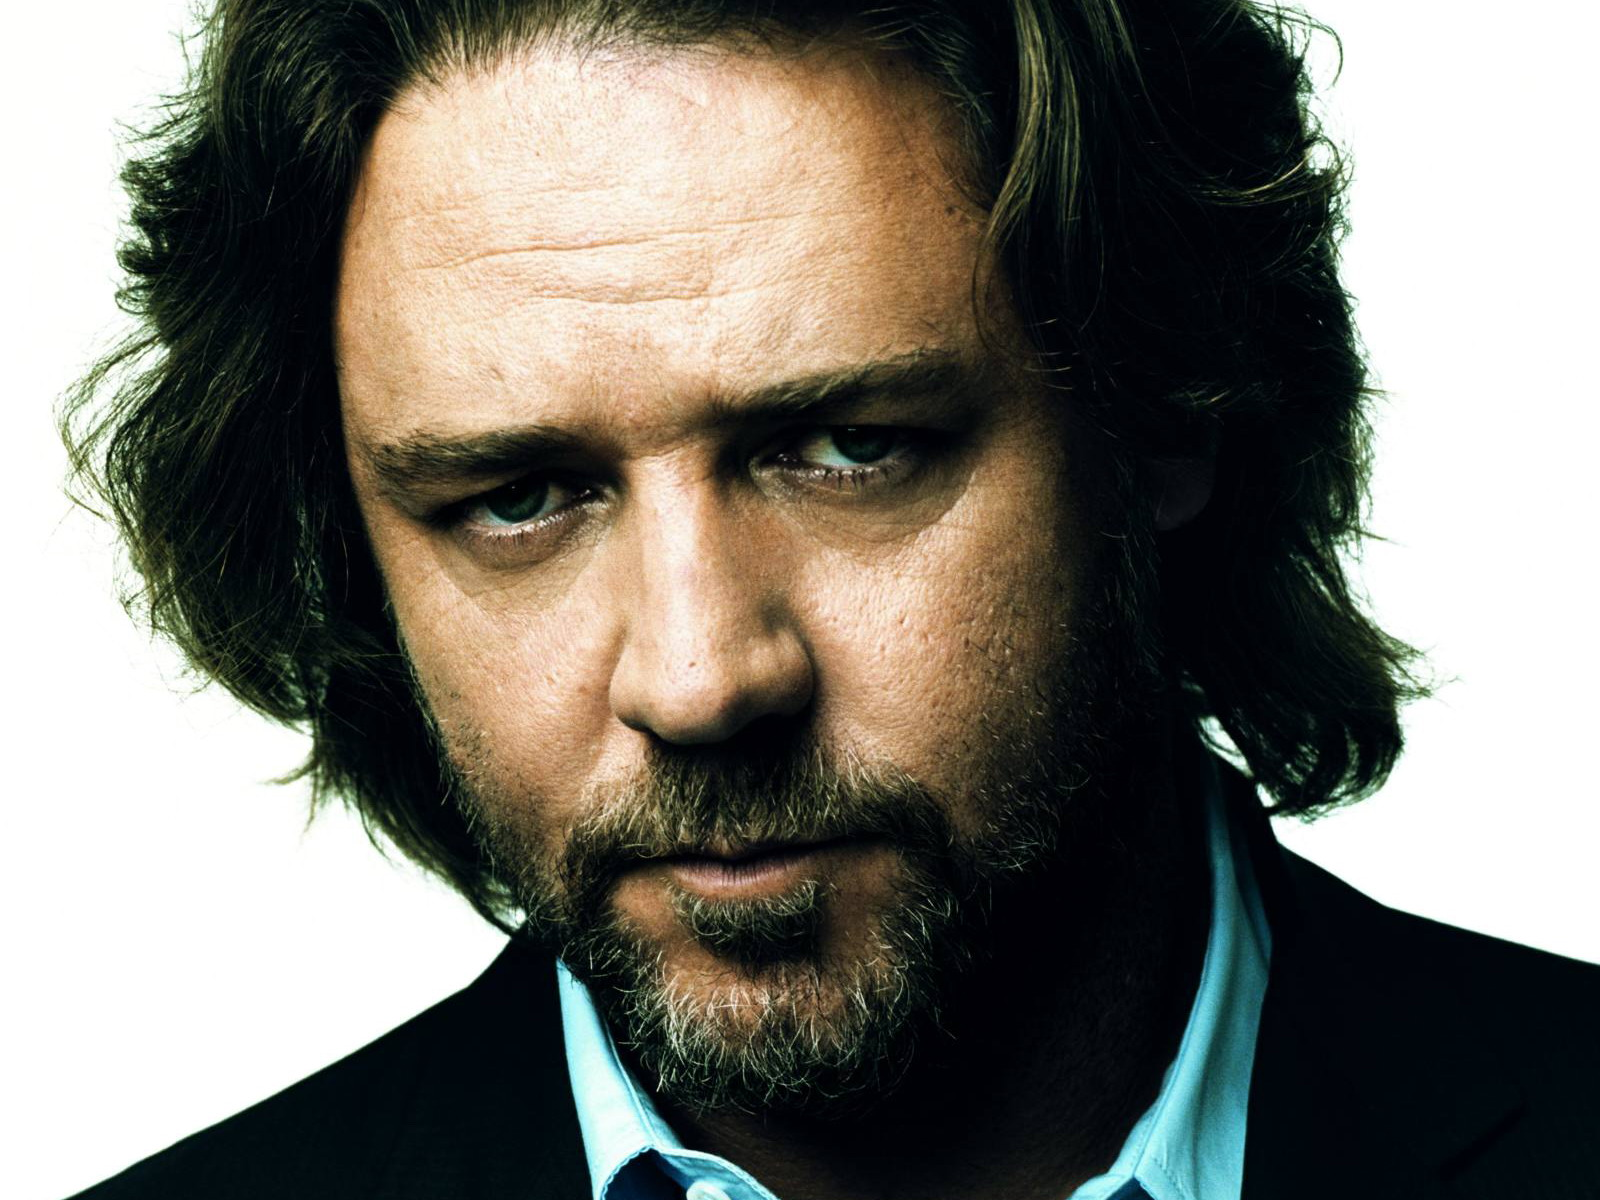 russell crowe face wallpaper 52377